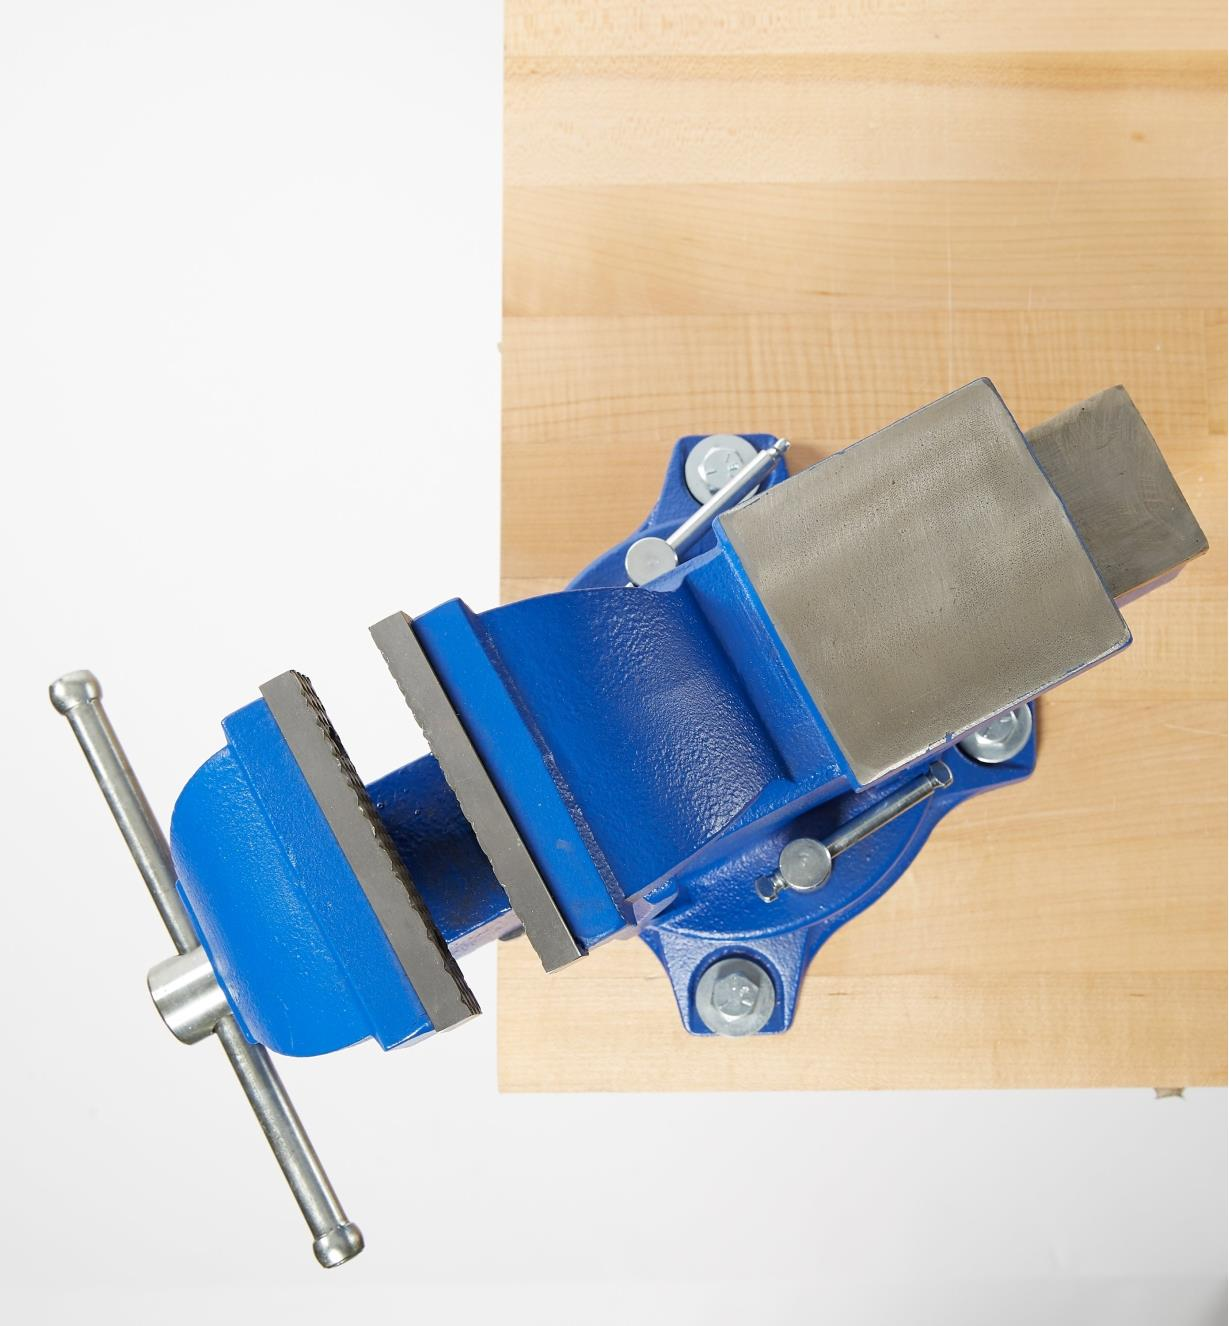 70G0106 - HD Swivel-Base Mechanic's Vise